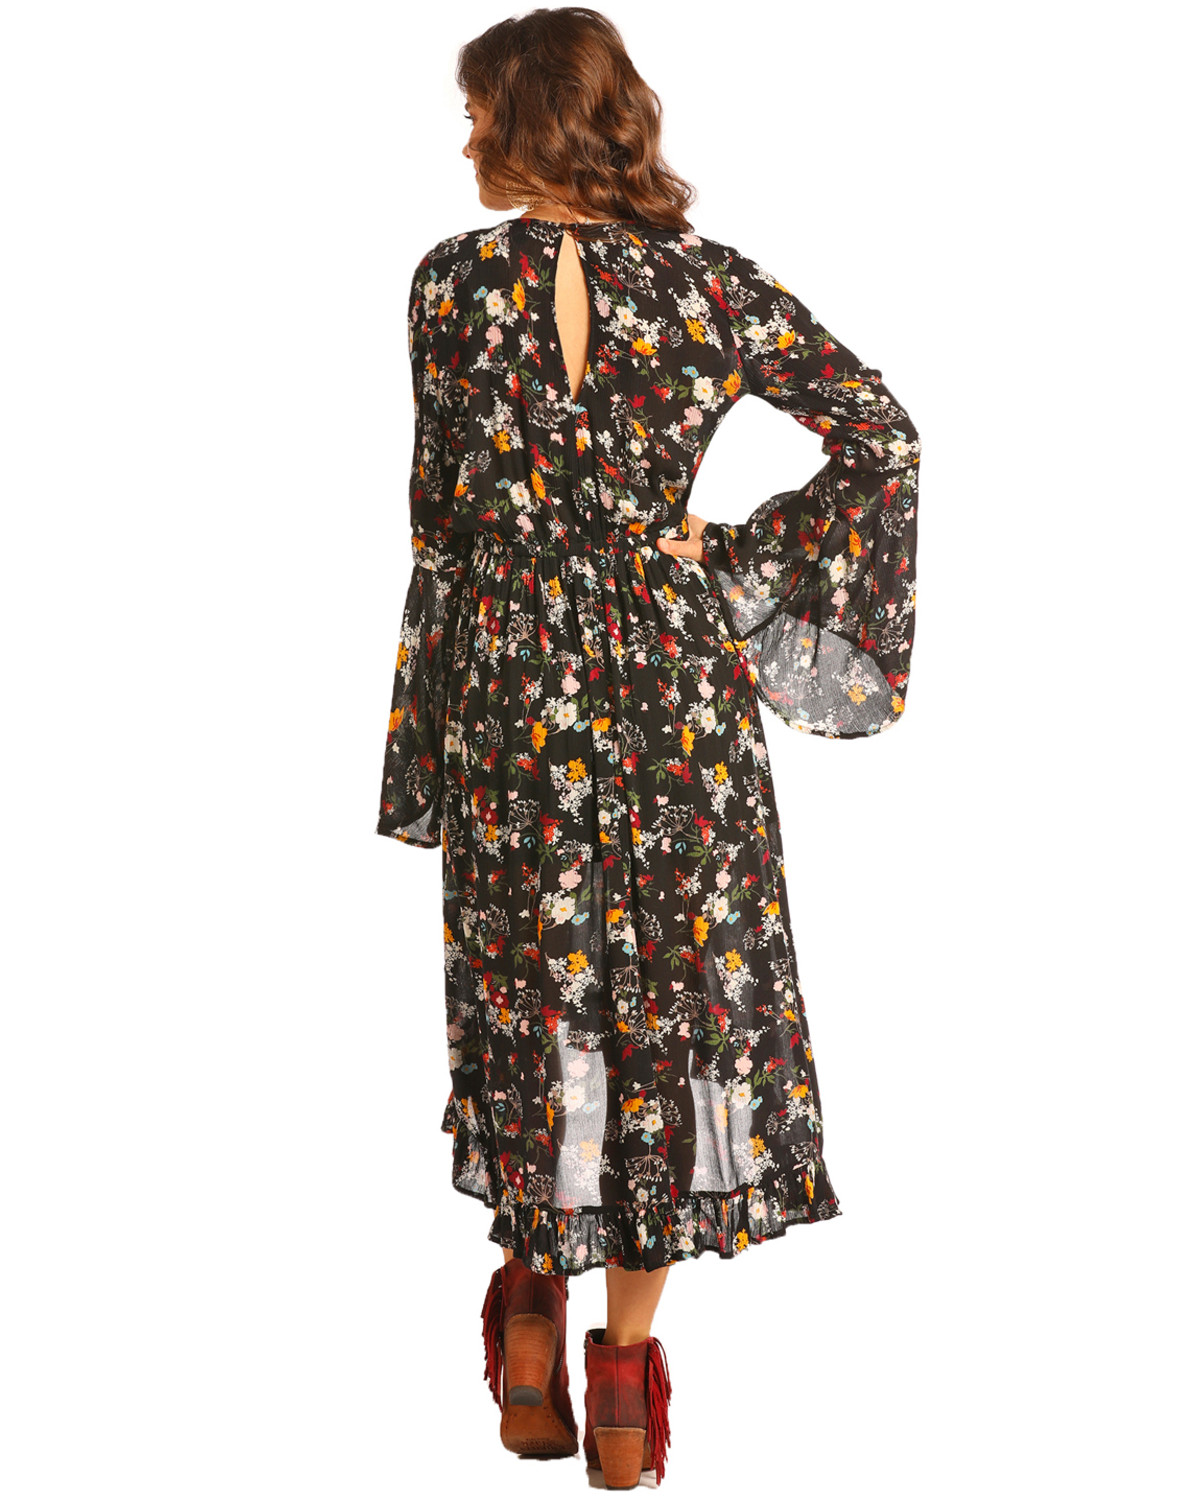 8a84b102 Shabby Country Chic Dress · Country Floral Print Dress: Rock & Roll Cowgirl  Women's Floral Print Hi Low Dress